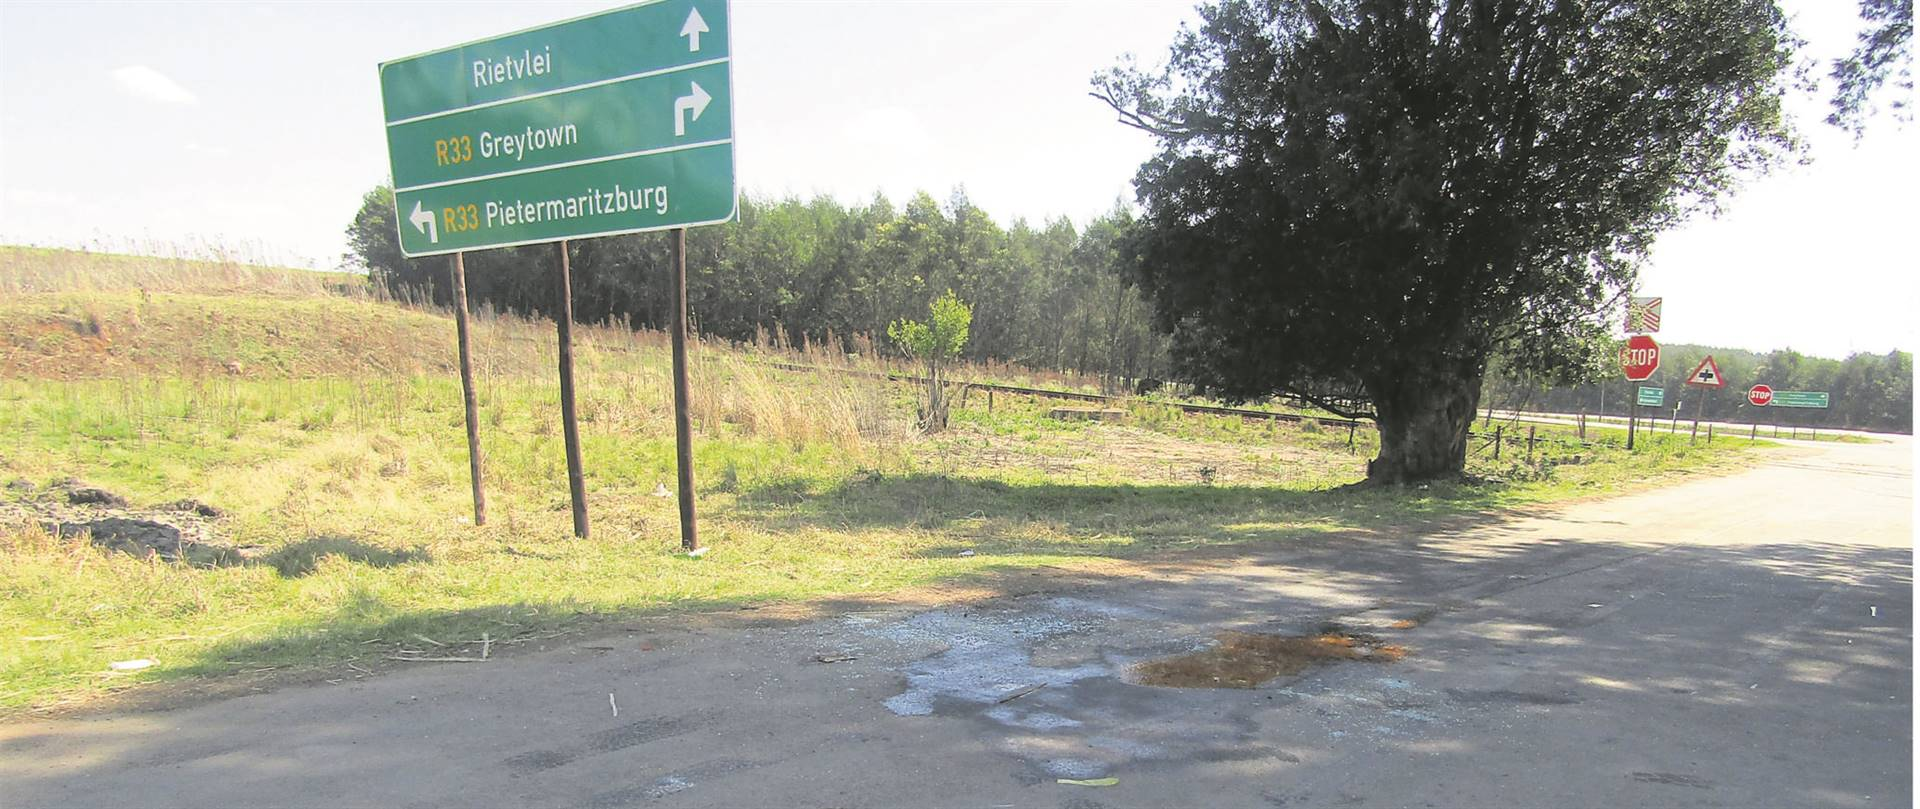 Blood stains at the scene where the two police officers were killed. photo: andile sithole